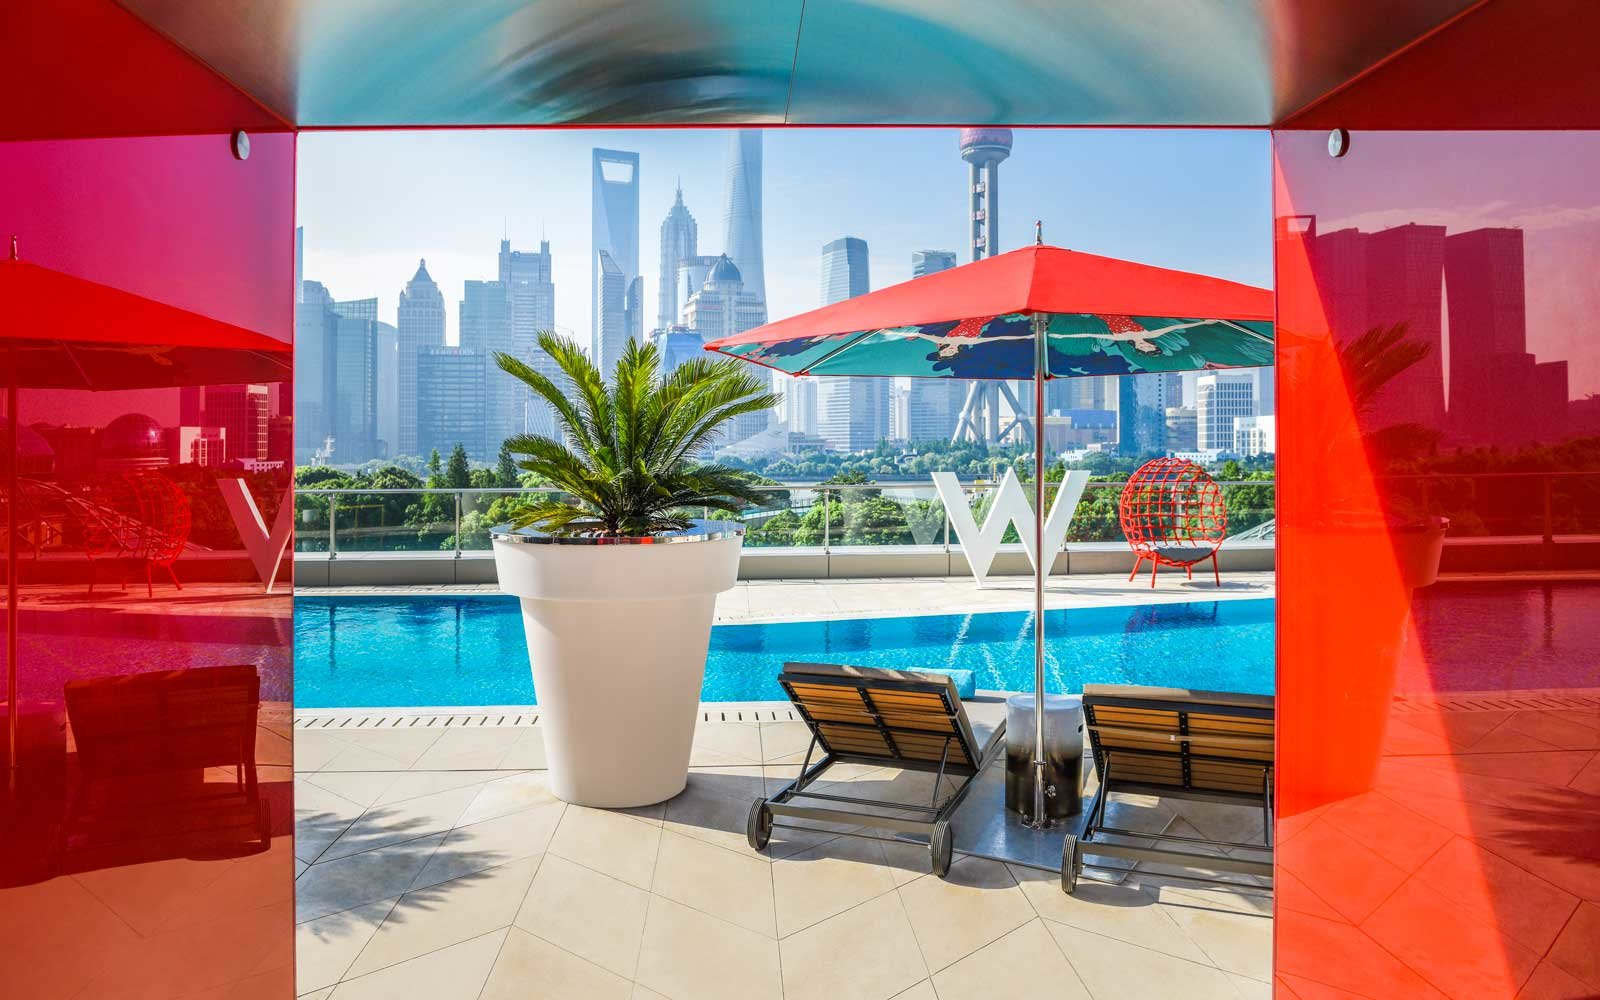 Pool view at the new W Hotel, in Shanghai, China